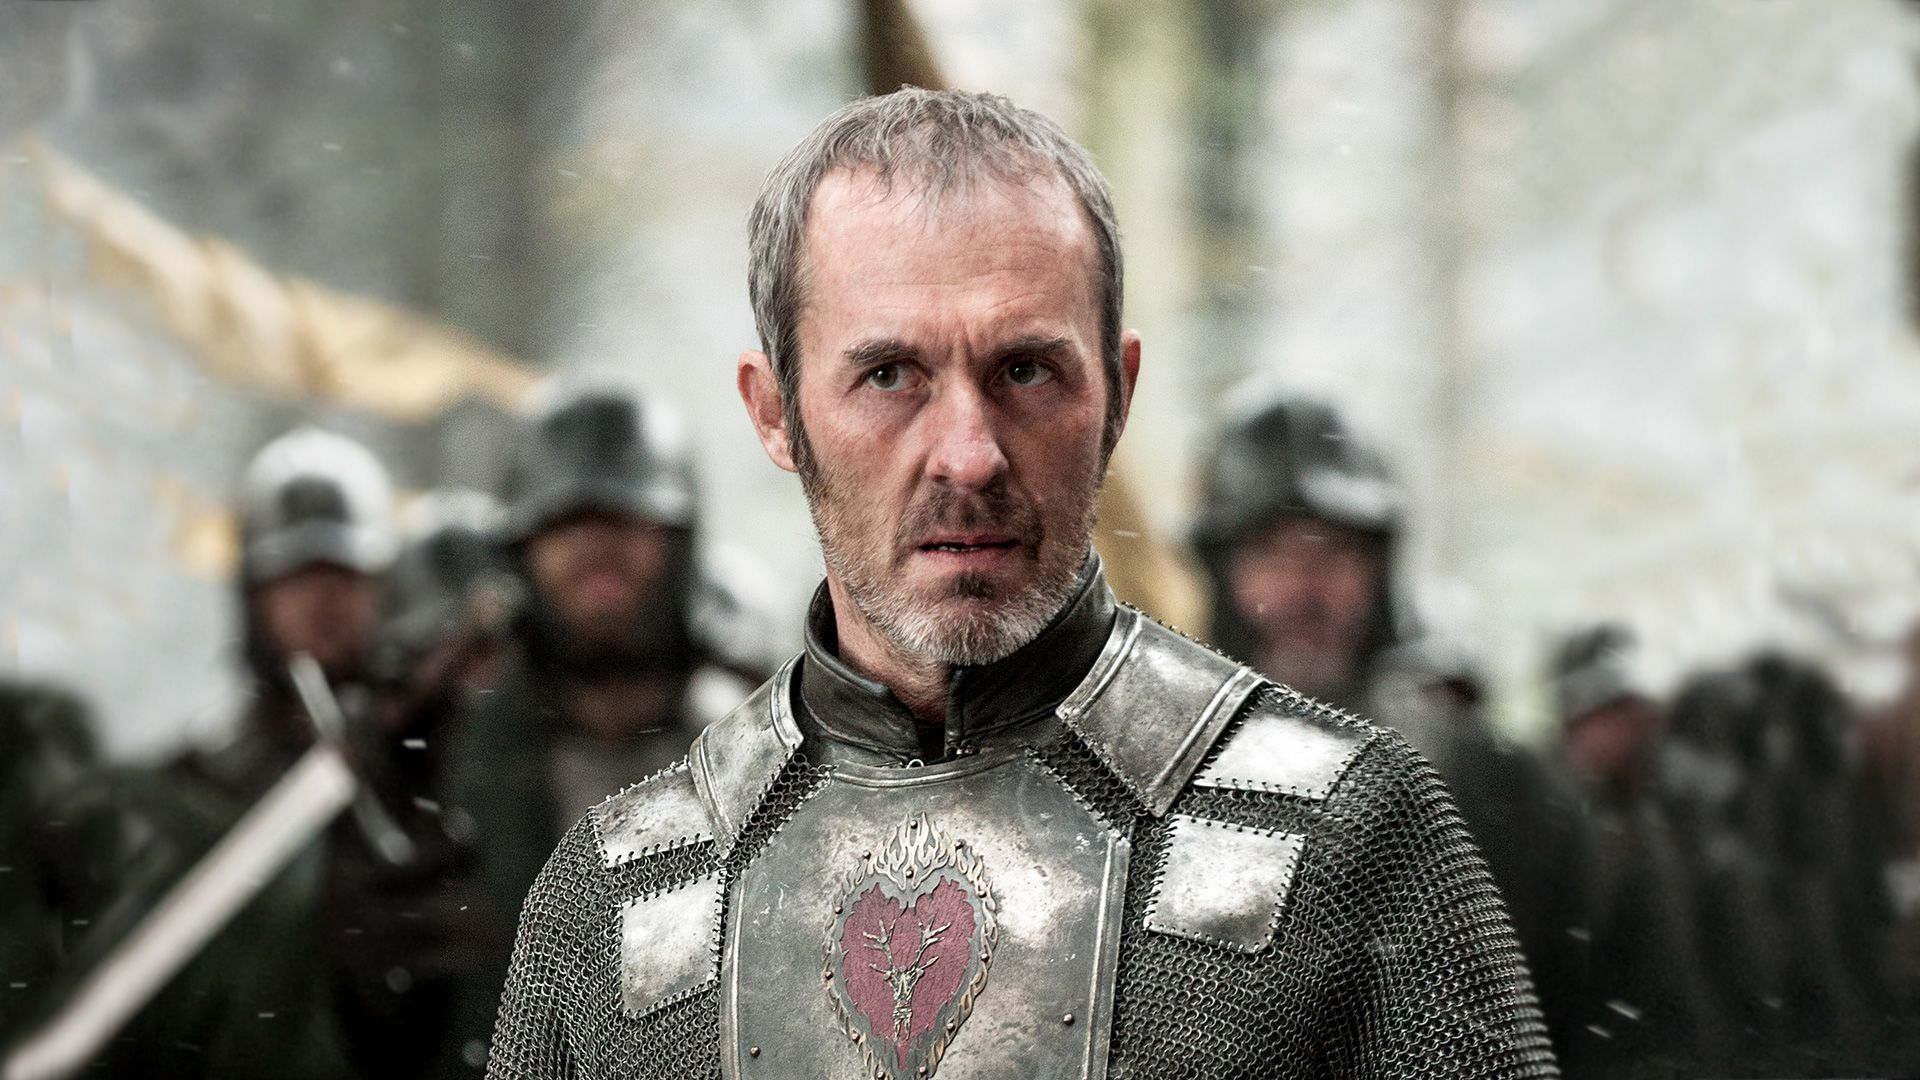 39 game of thrones 39 is too brutal to watch says stannis baratheon actor. Black Bedroom Furniture Sets. Home Design Ideas